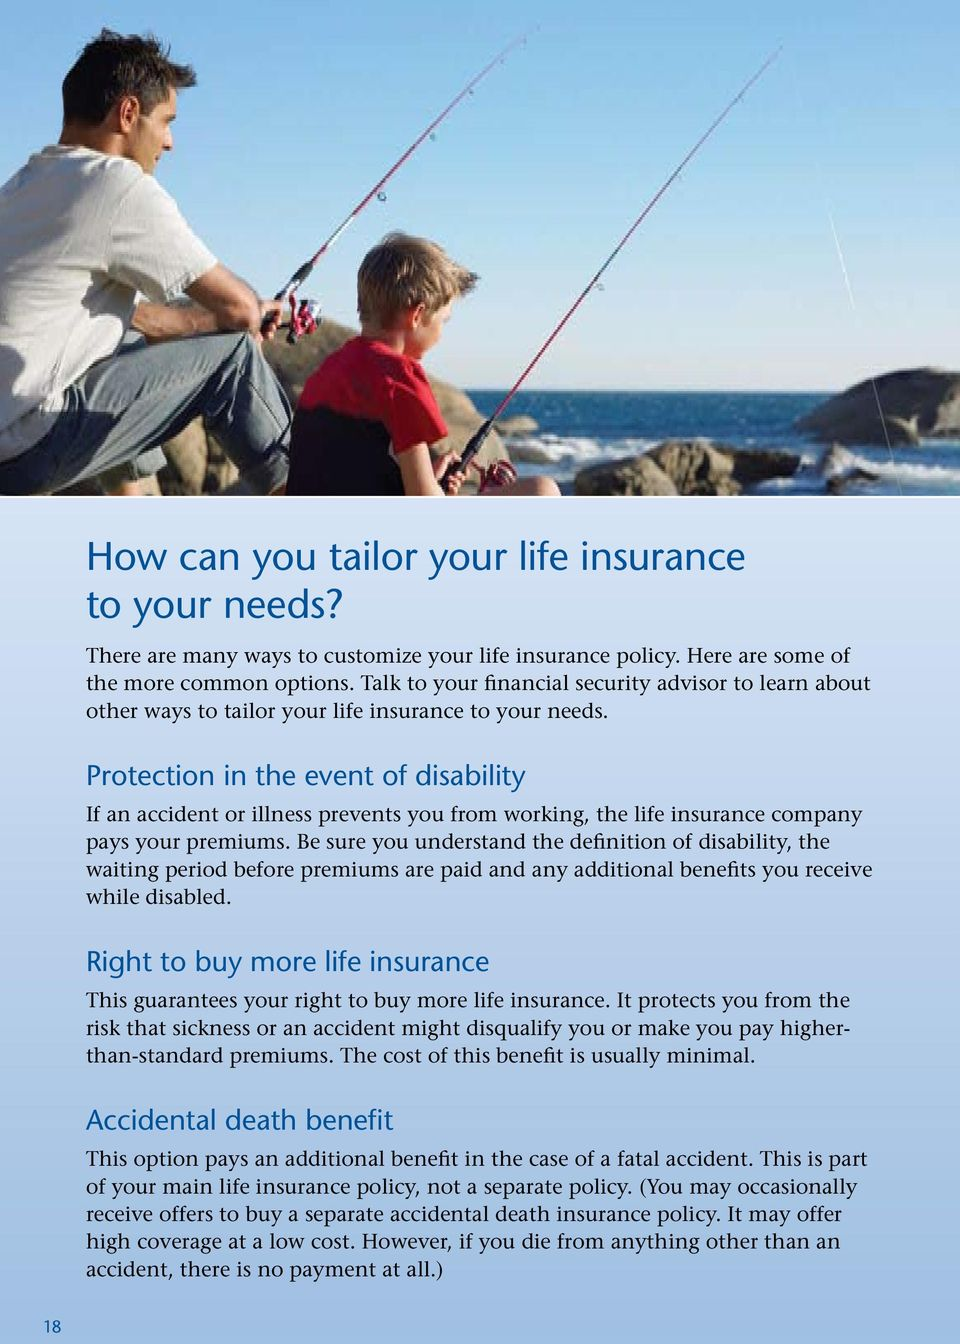 Protection in the event of disability If an accident or illness prevents you from working, the life insurance company pays your premiums.